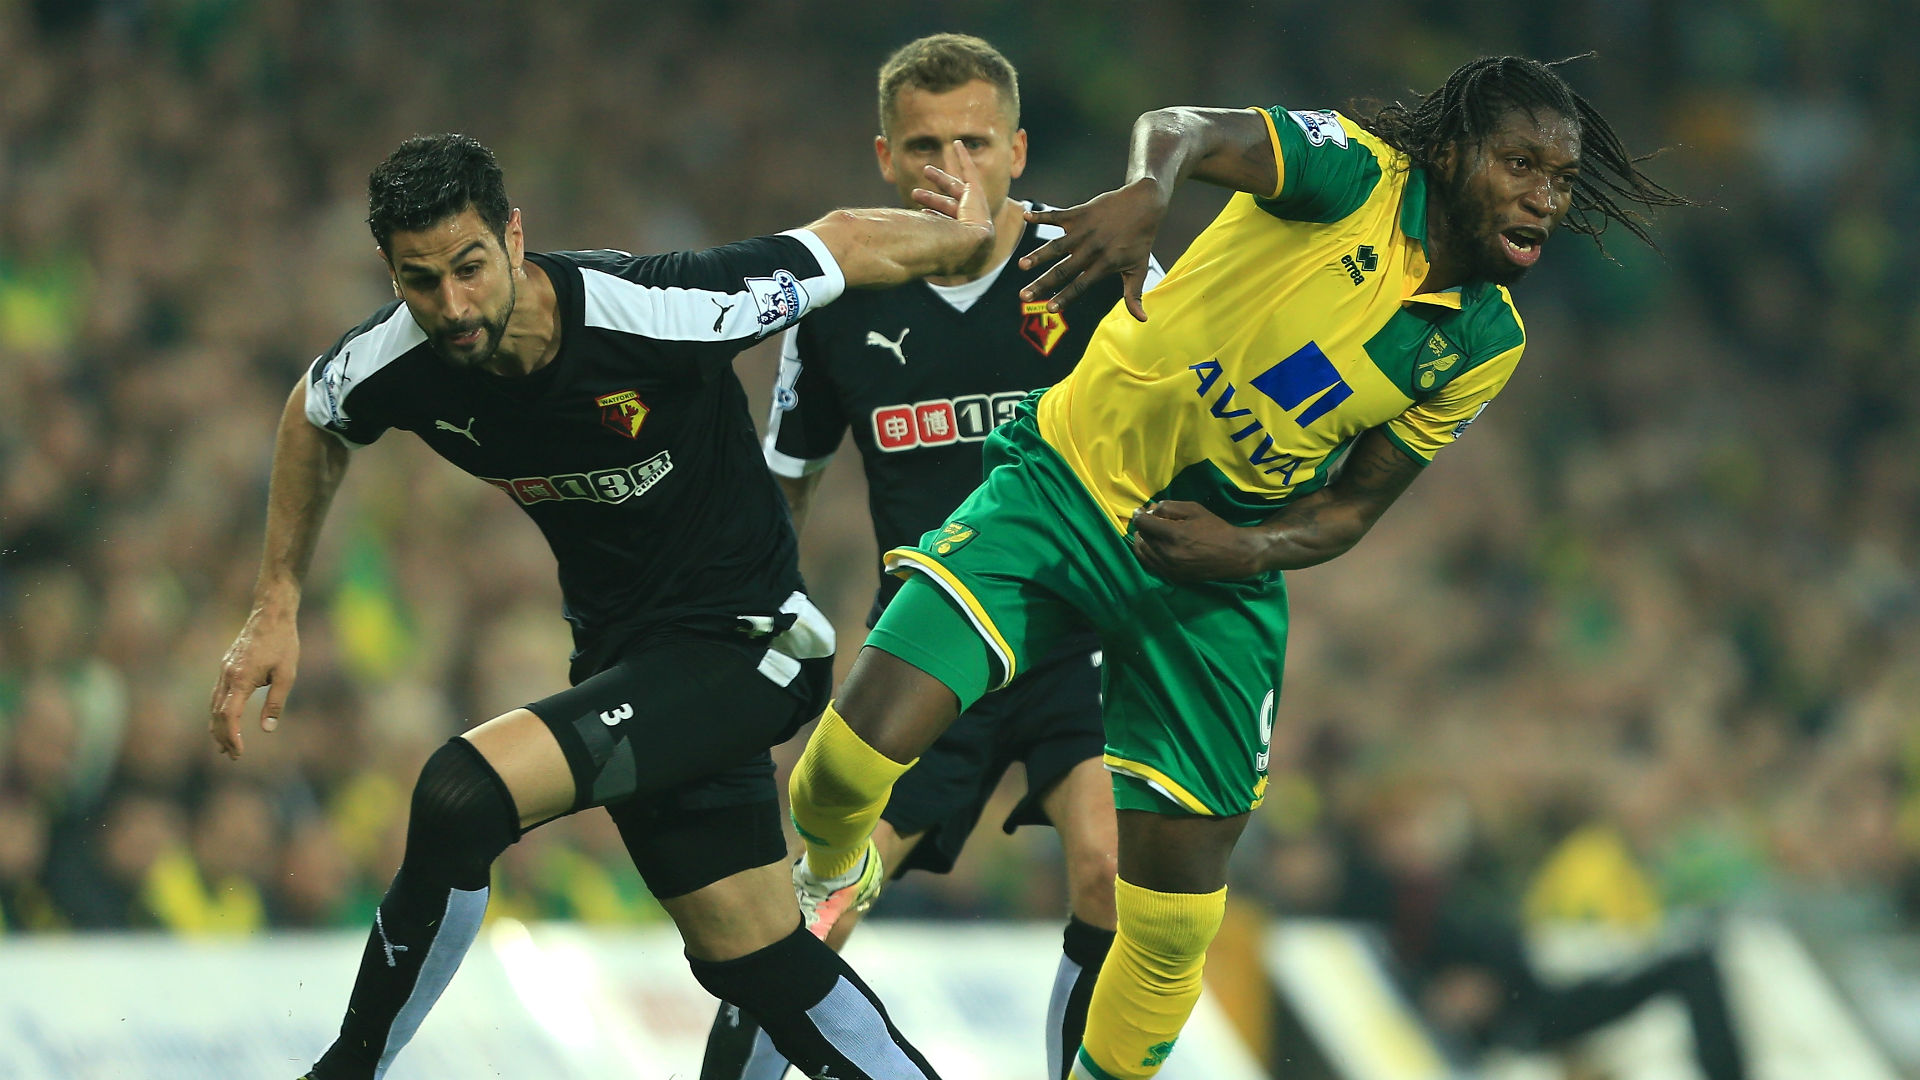 Video: Norwich City vs Watford